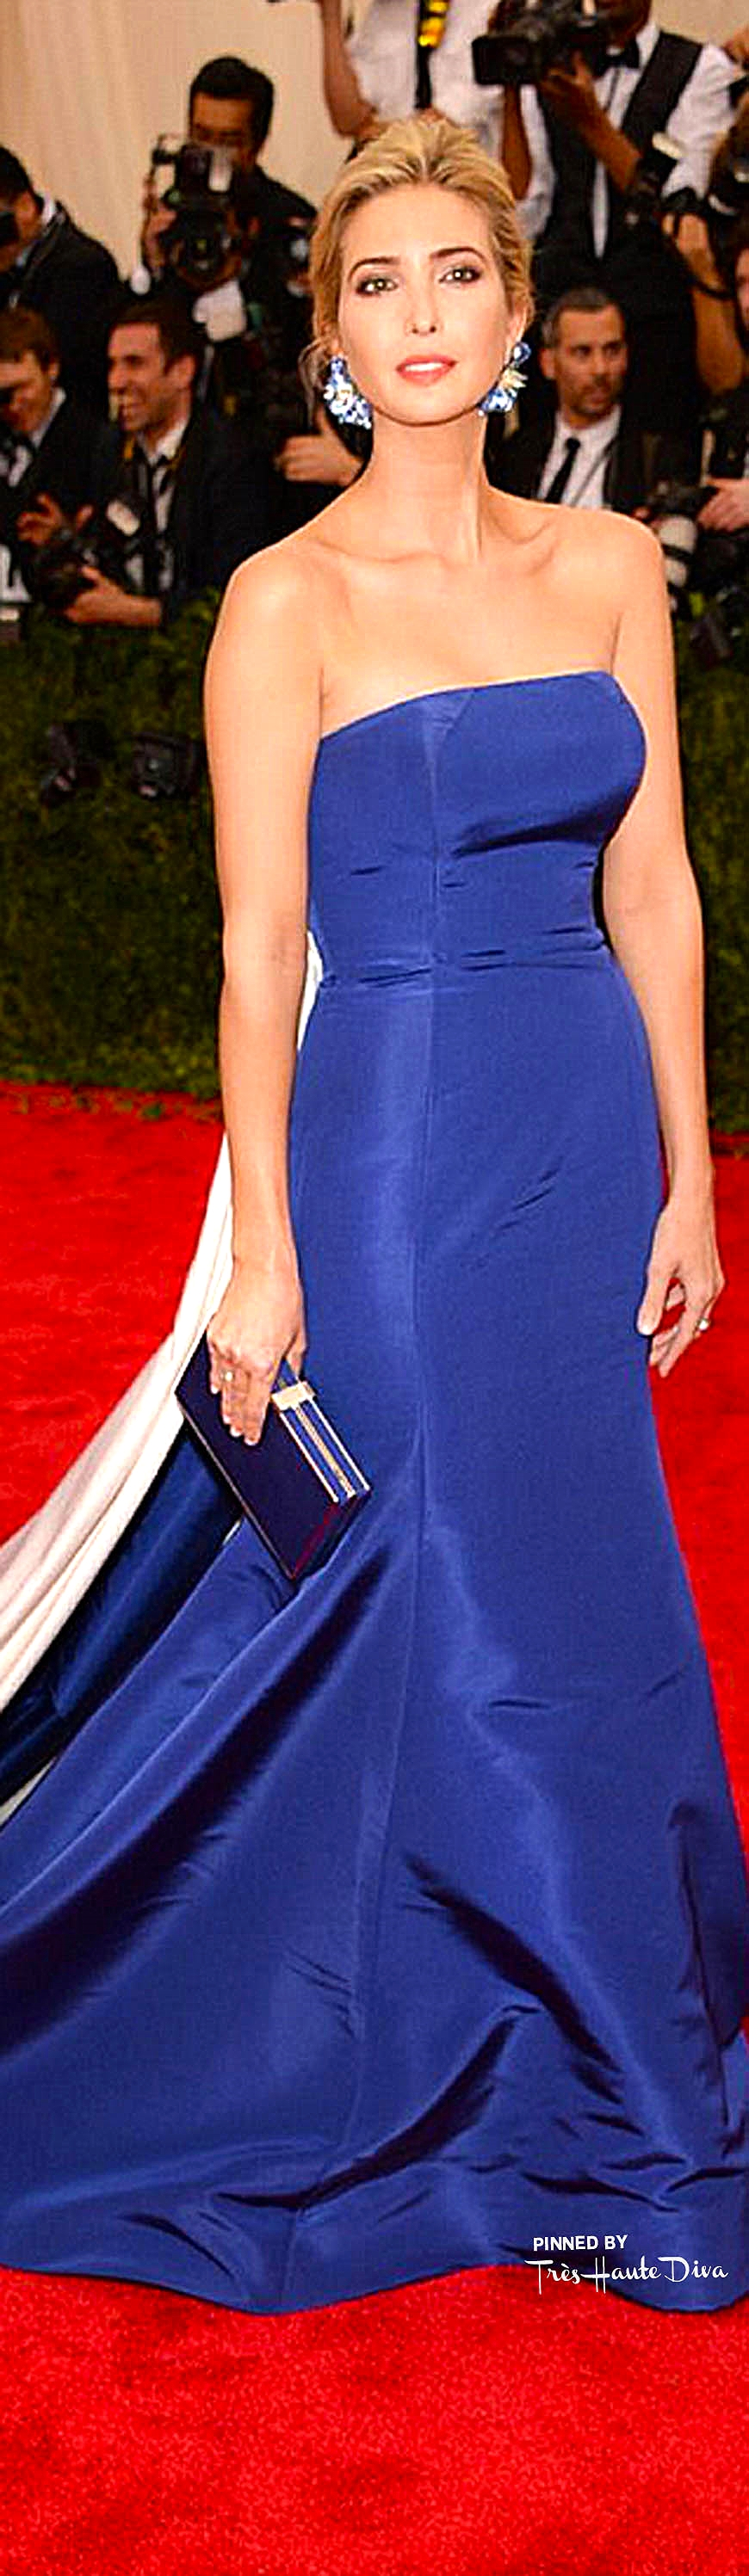 Ivanka Trump in Prabal Gurung Couture                                 Getty Images